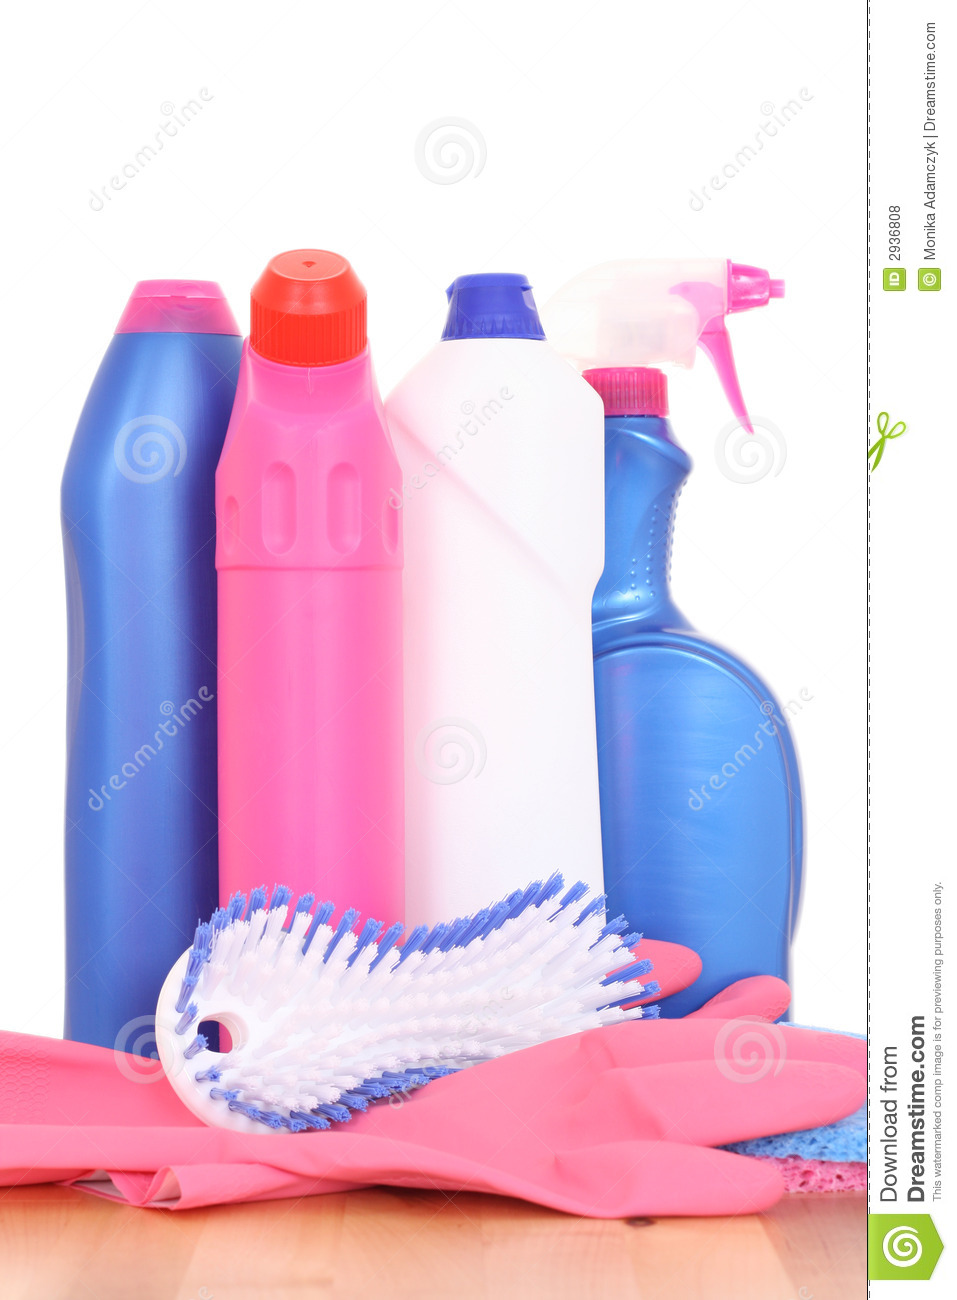 Cleaning house royalty free stock photos image 2936808 for House cleaning stock photos